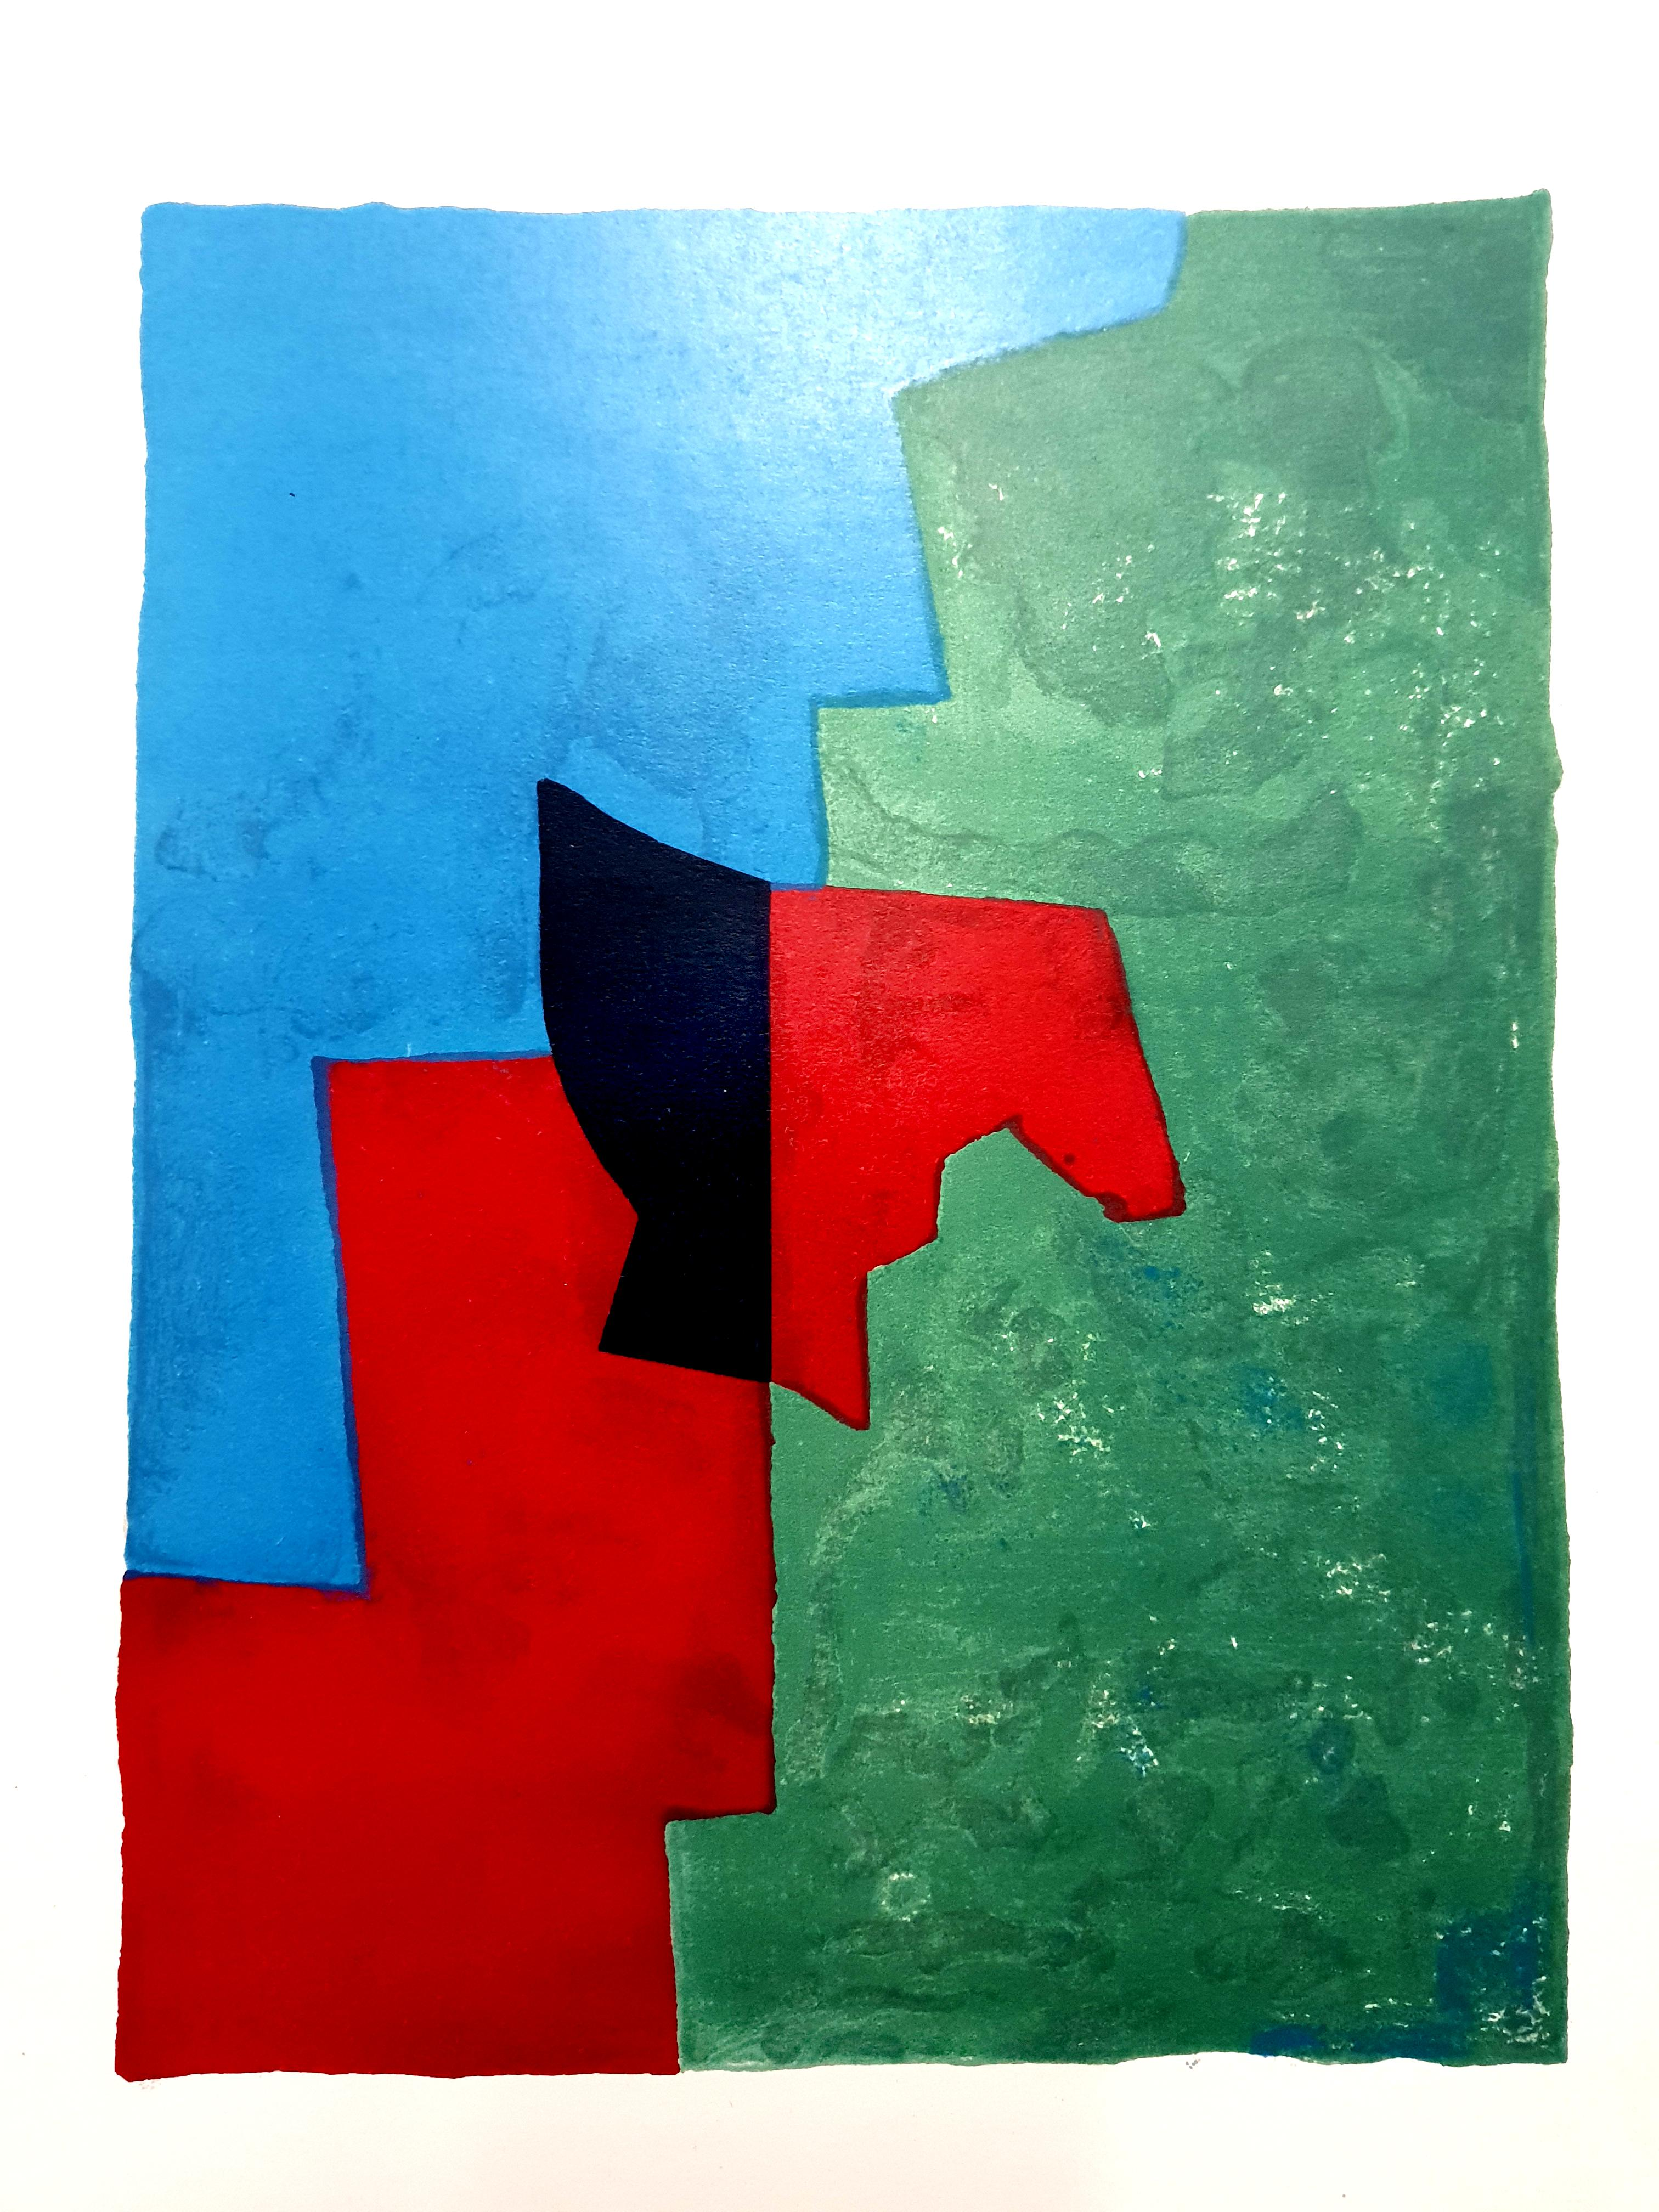 Serge Poliakoff - Original Abstract Composition - Lithograph